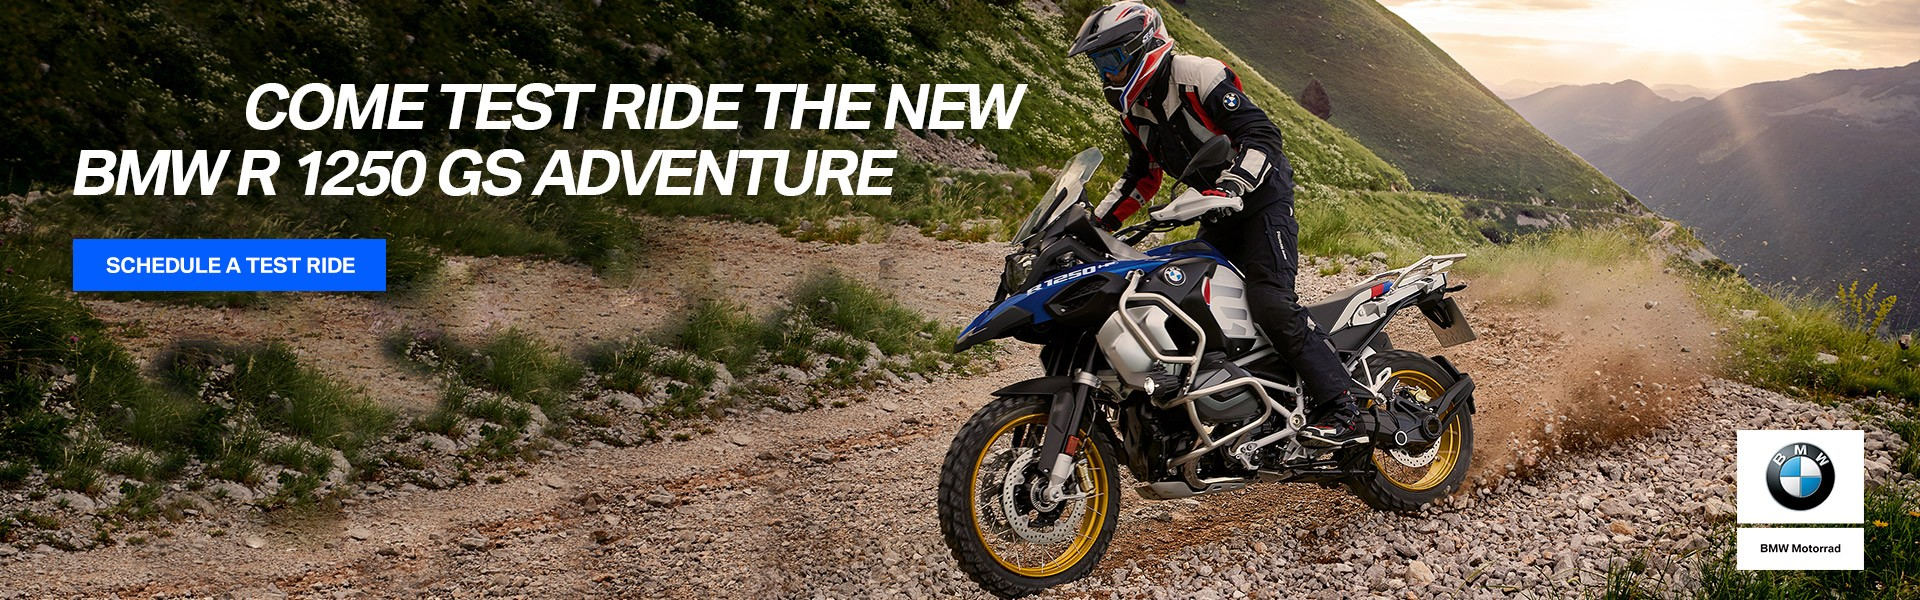 Schedule a Test Ride - Come to test ride the new BMW R 1250 GS ADVENTURE